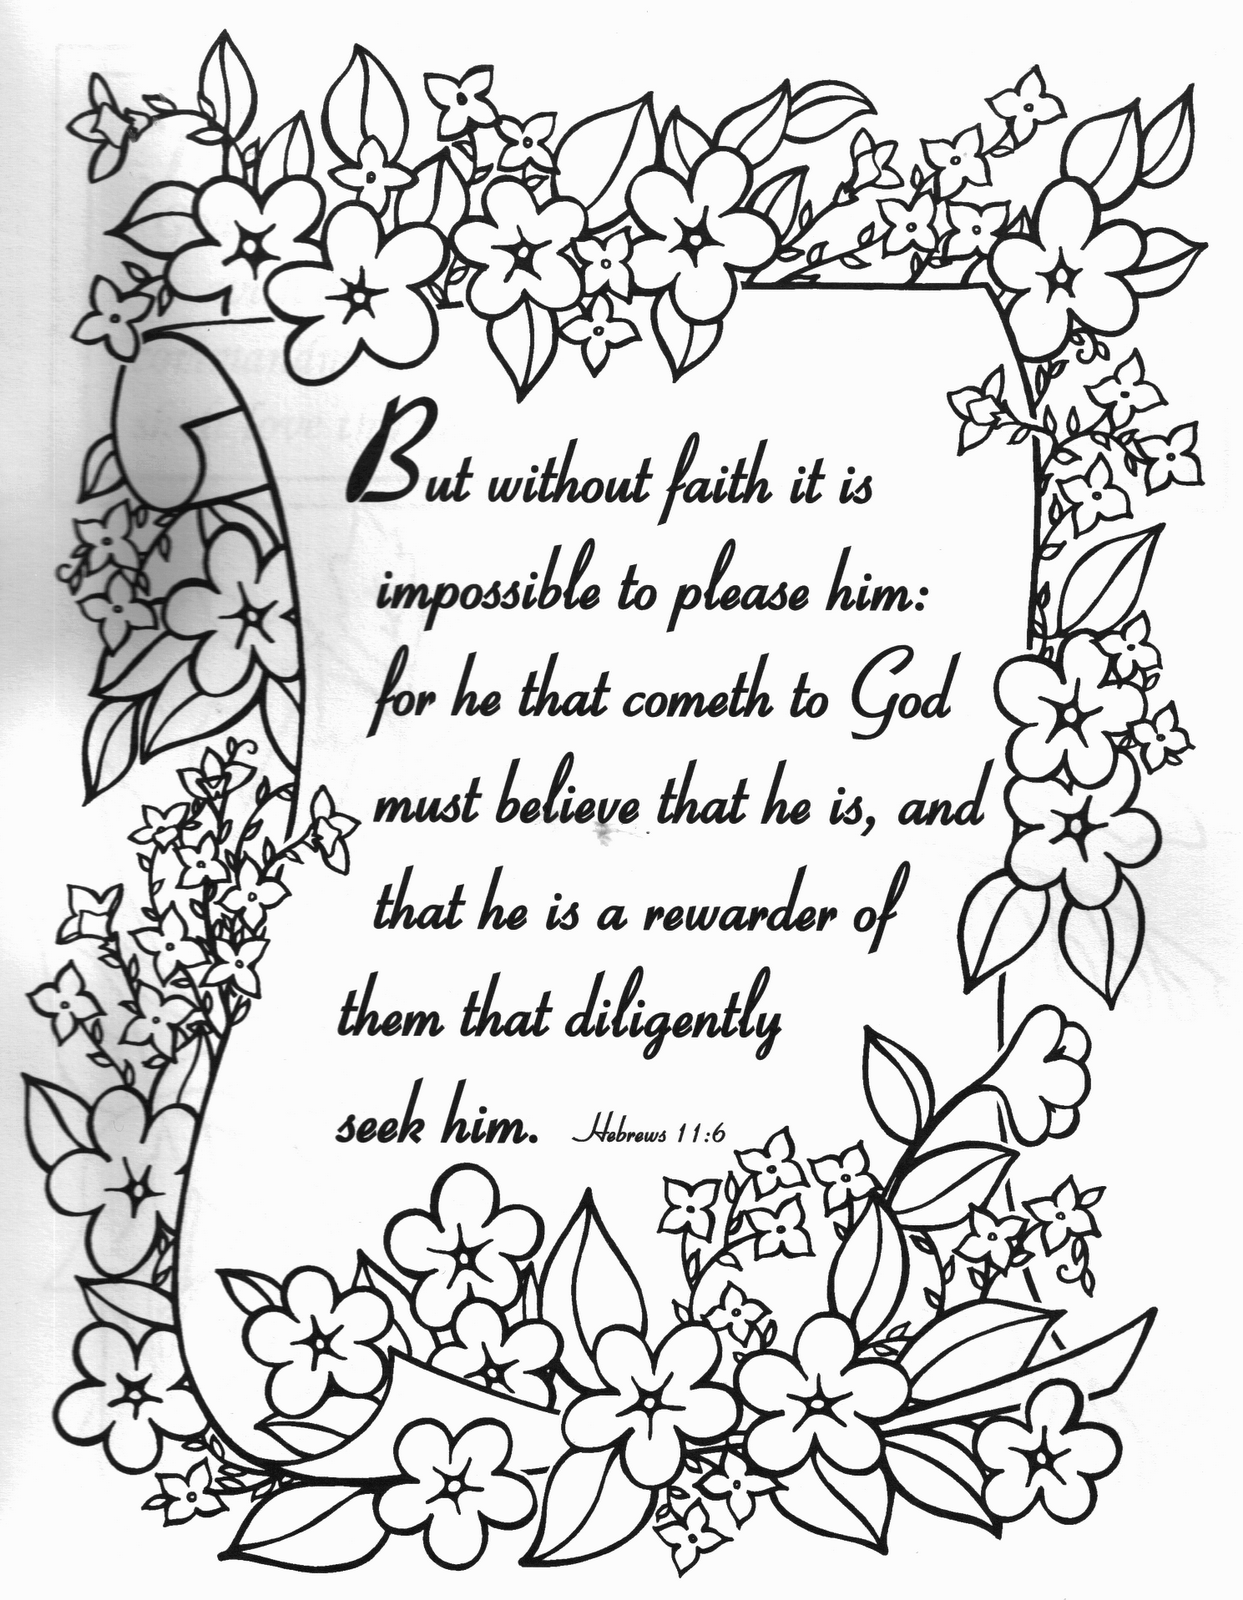 free bible verse coloring pages coloring page from the psalms in color bible verse pages coloring bible verse free